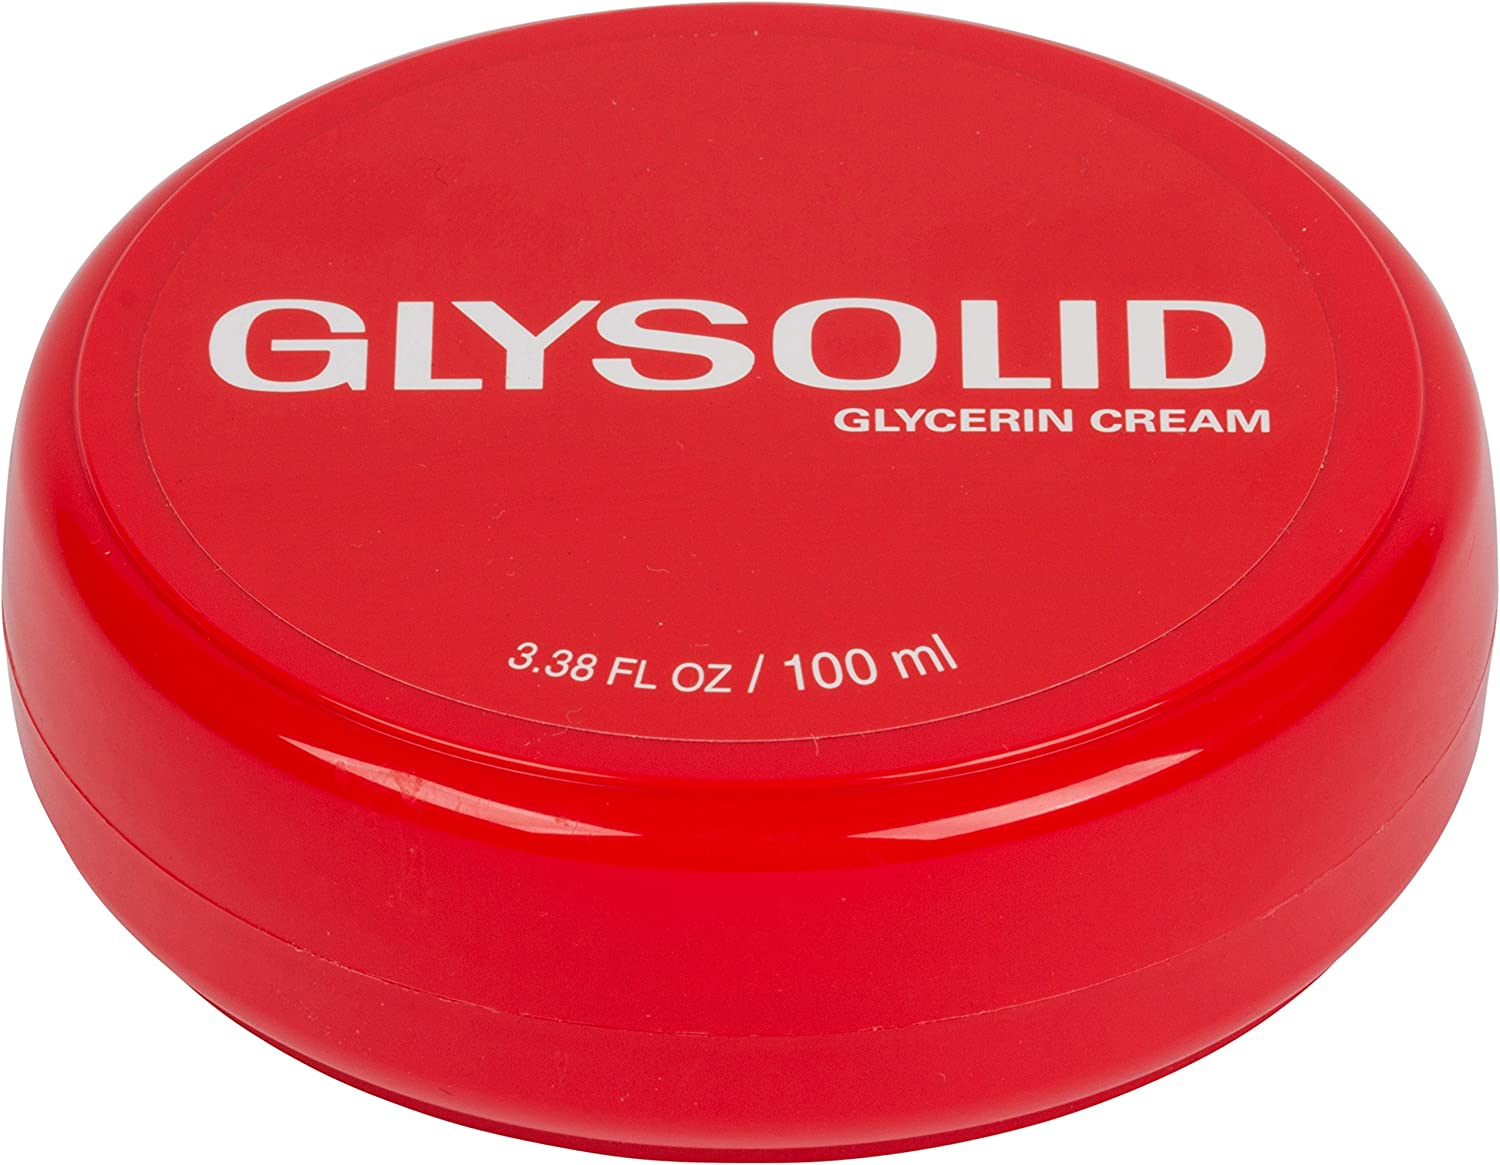 Glysolid Skin Balm Cream. The Dry and Cracked Skin Solution!